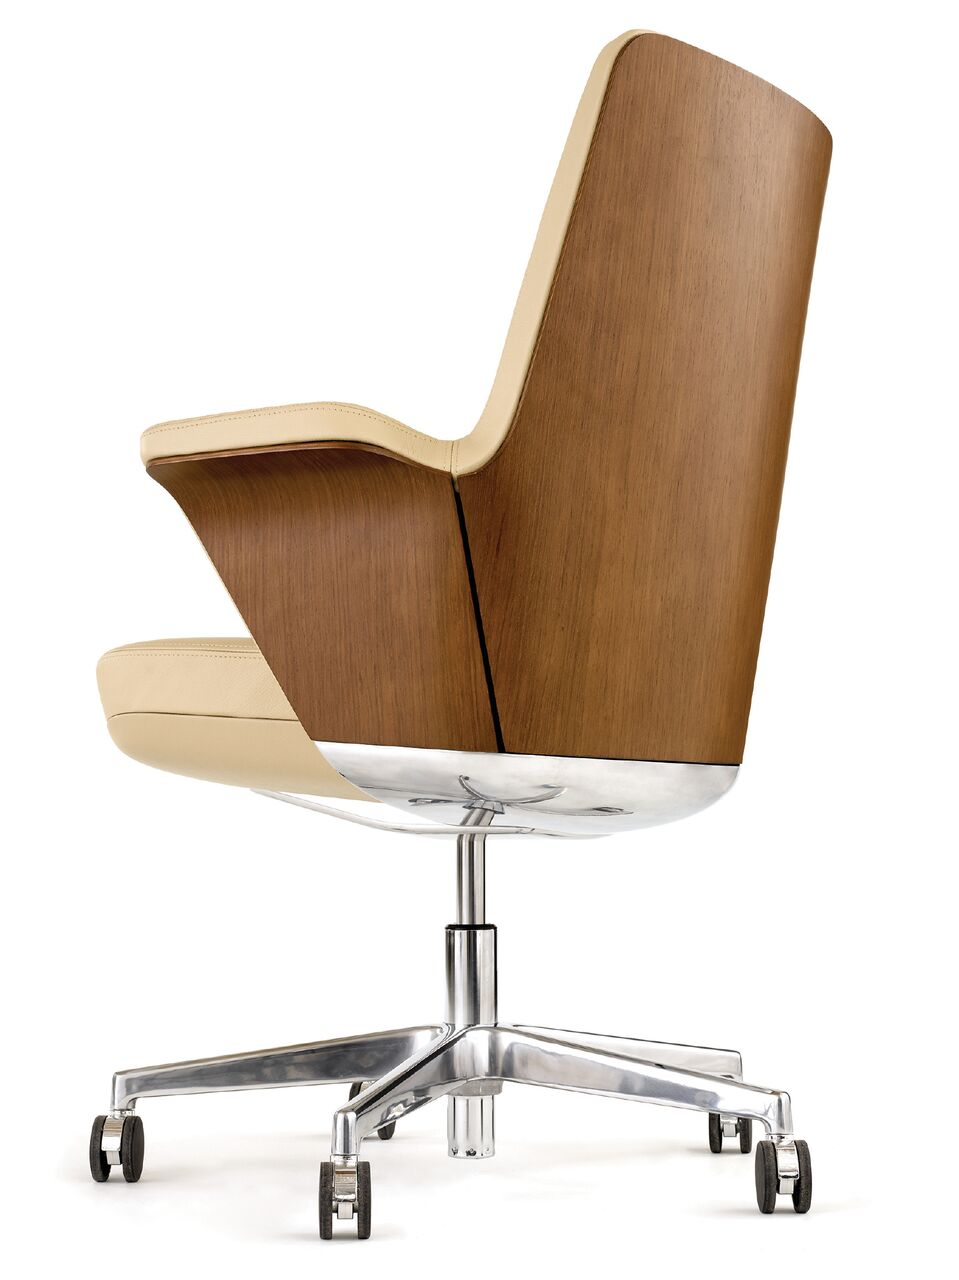 Wood veneer-backed boardroom chair